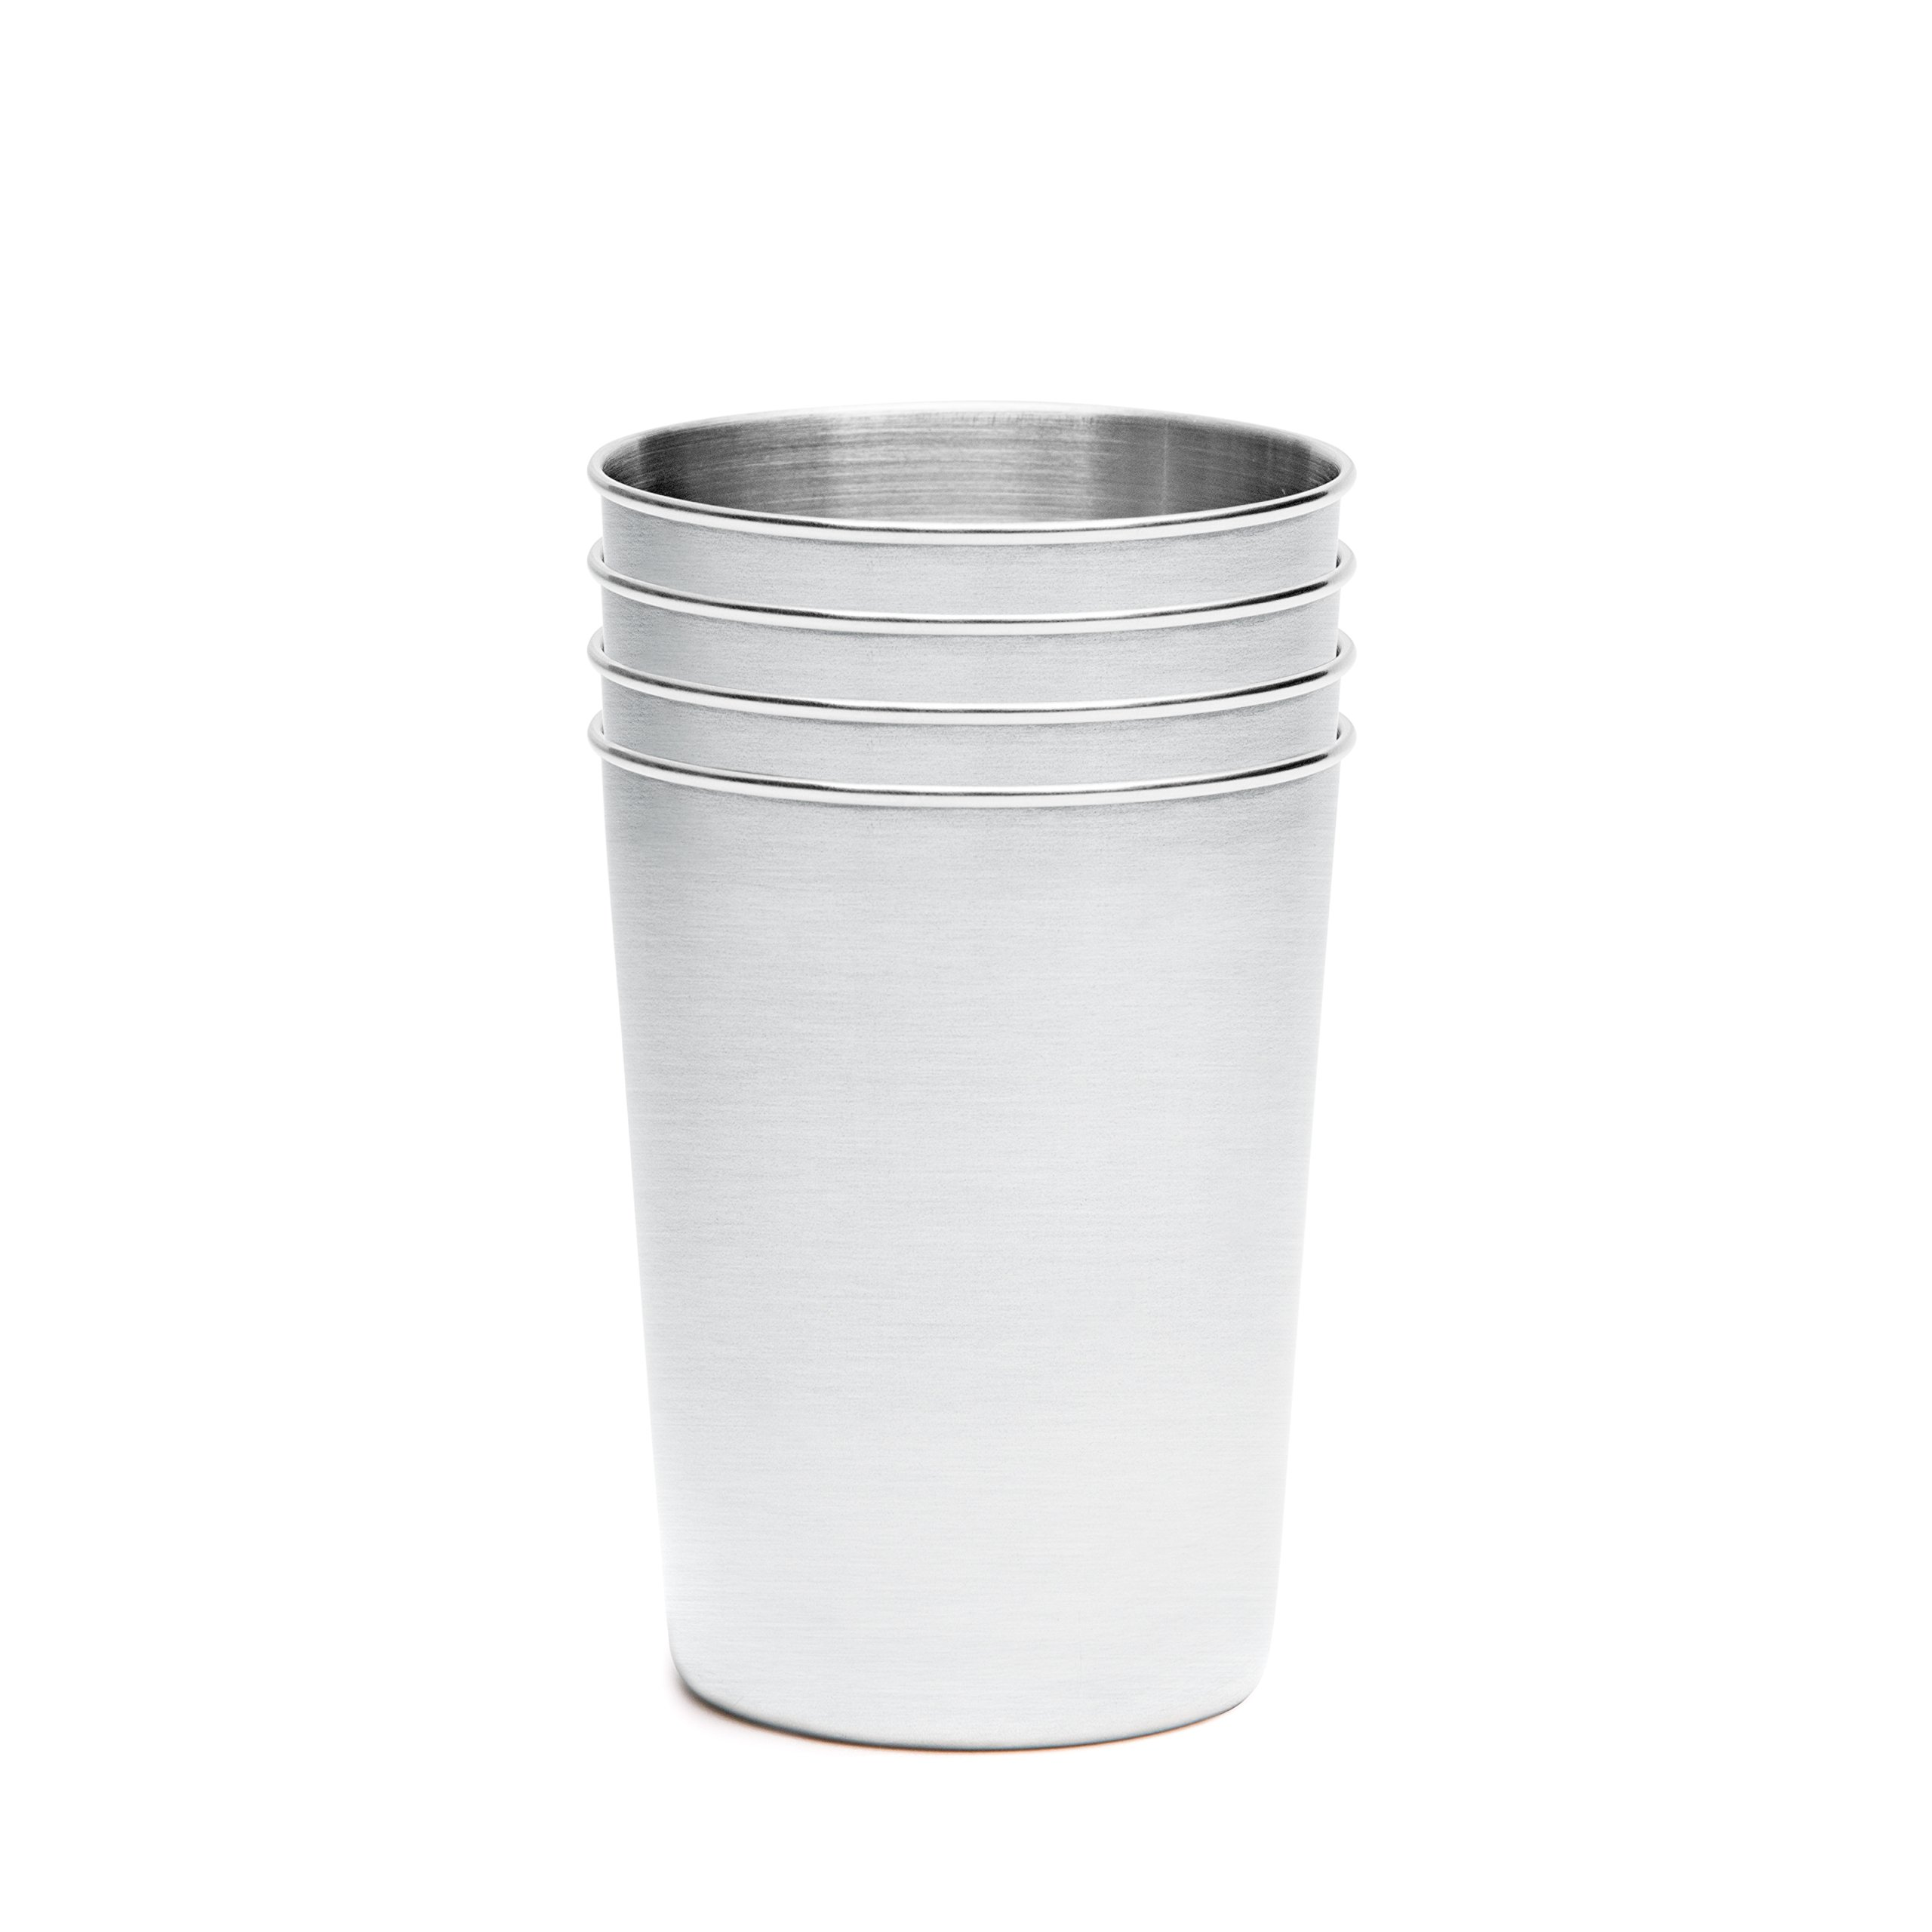 +Steel Stainless Steel Children's Cups 10oz, Set of 4 18/8 Stainless Steel Cups, Unbreakable Dishwasher Safe BPA Free